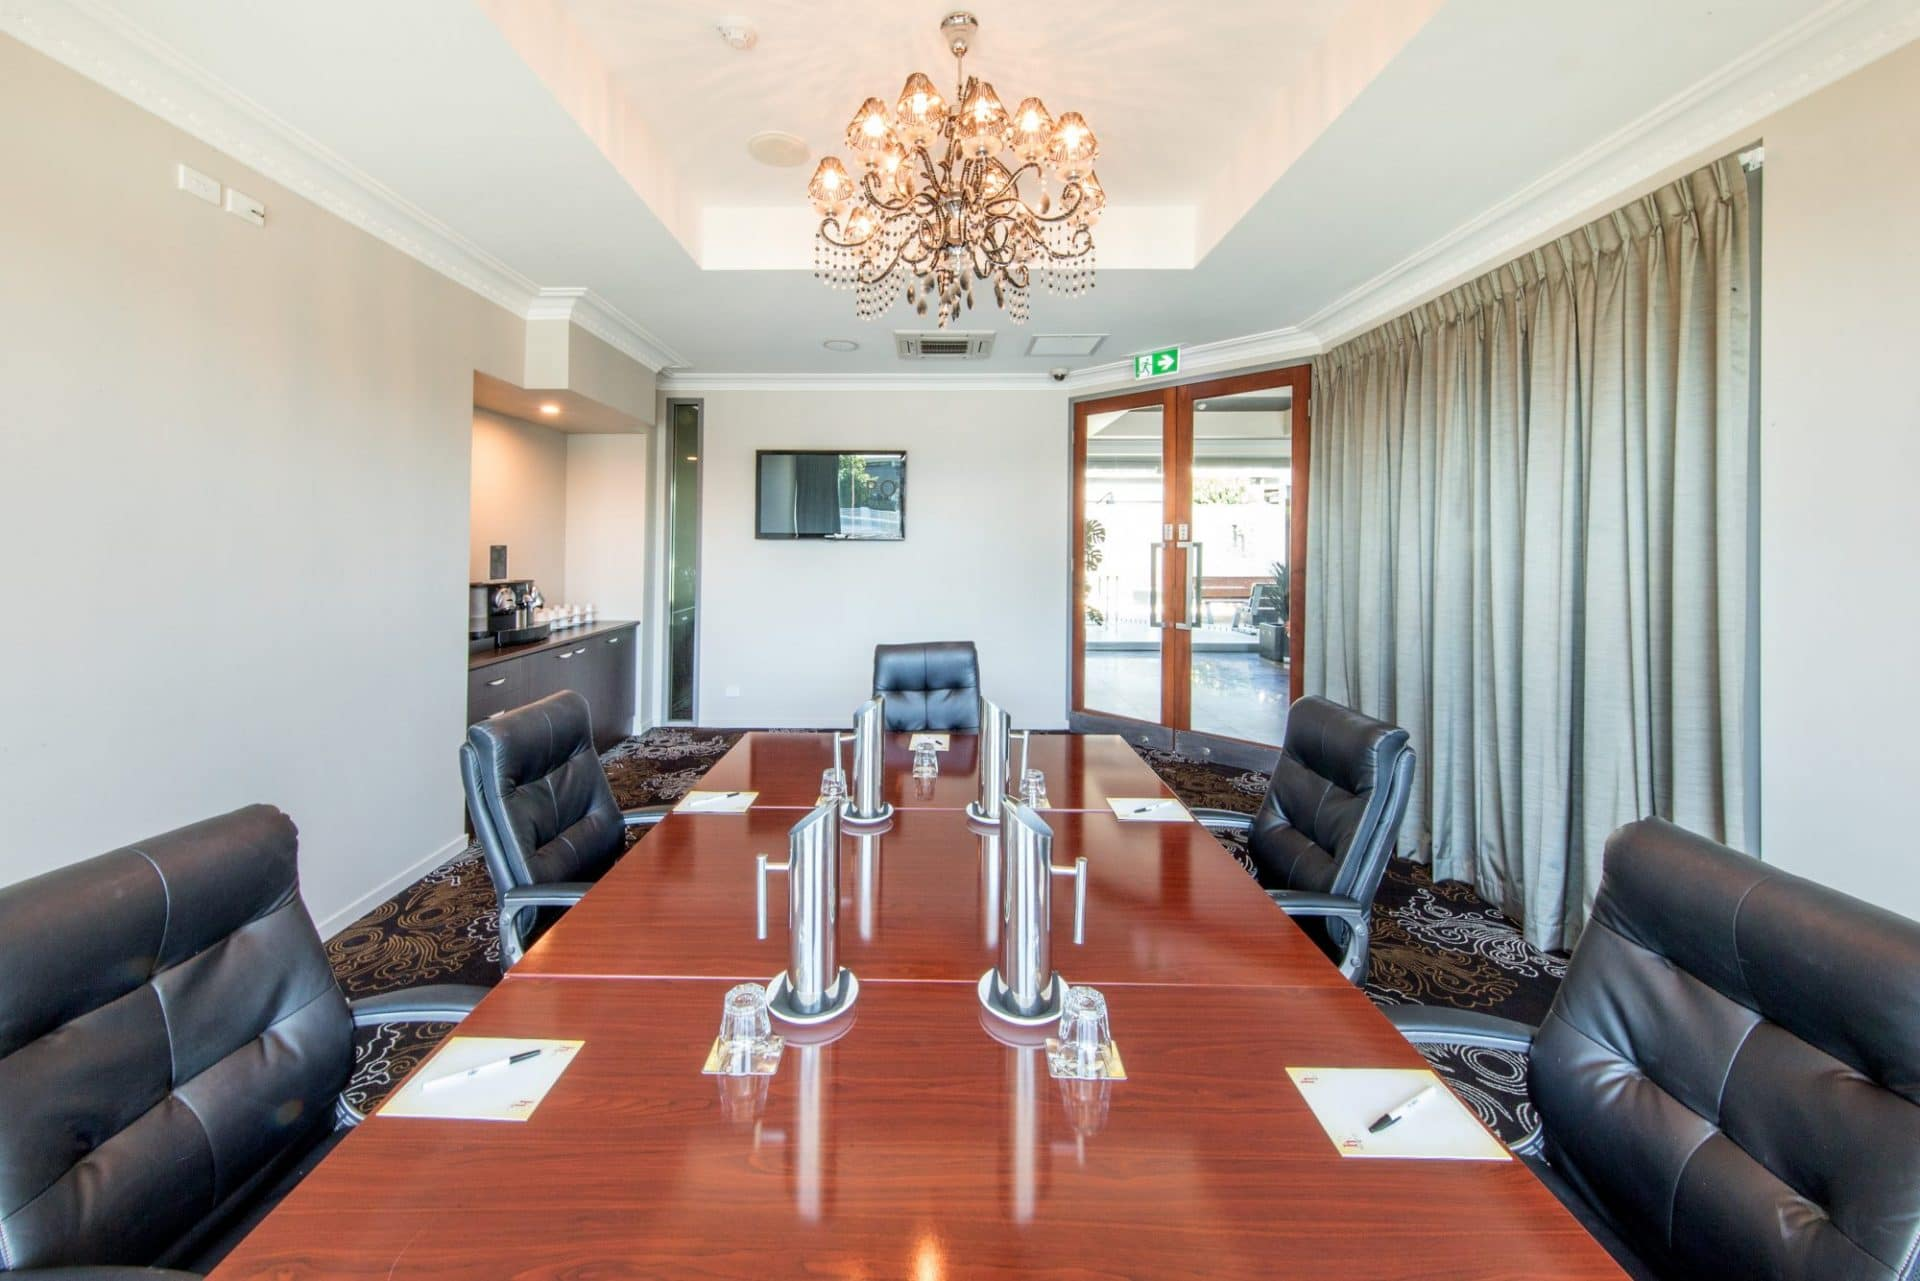 Corporate Events in the Boardroom